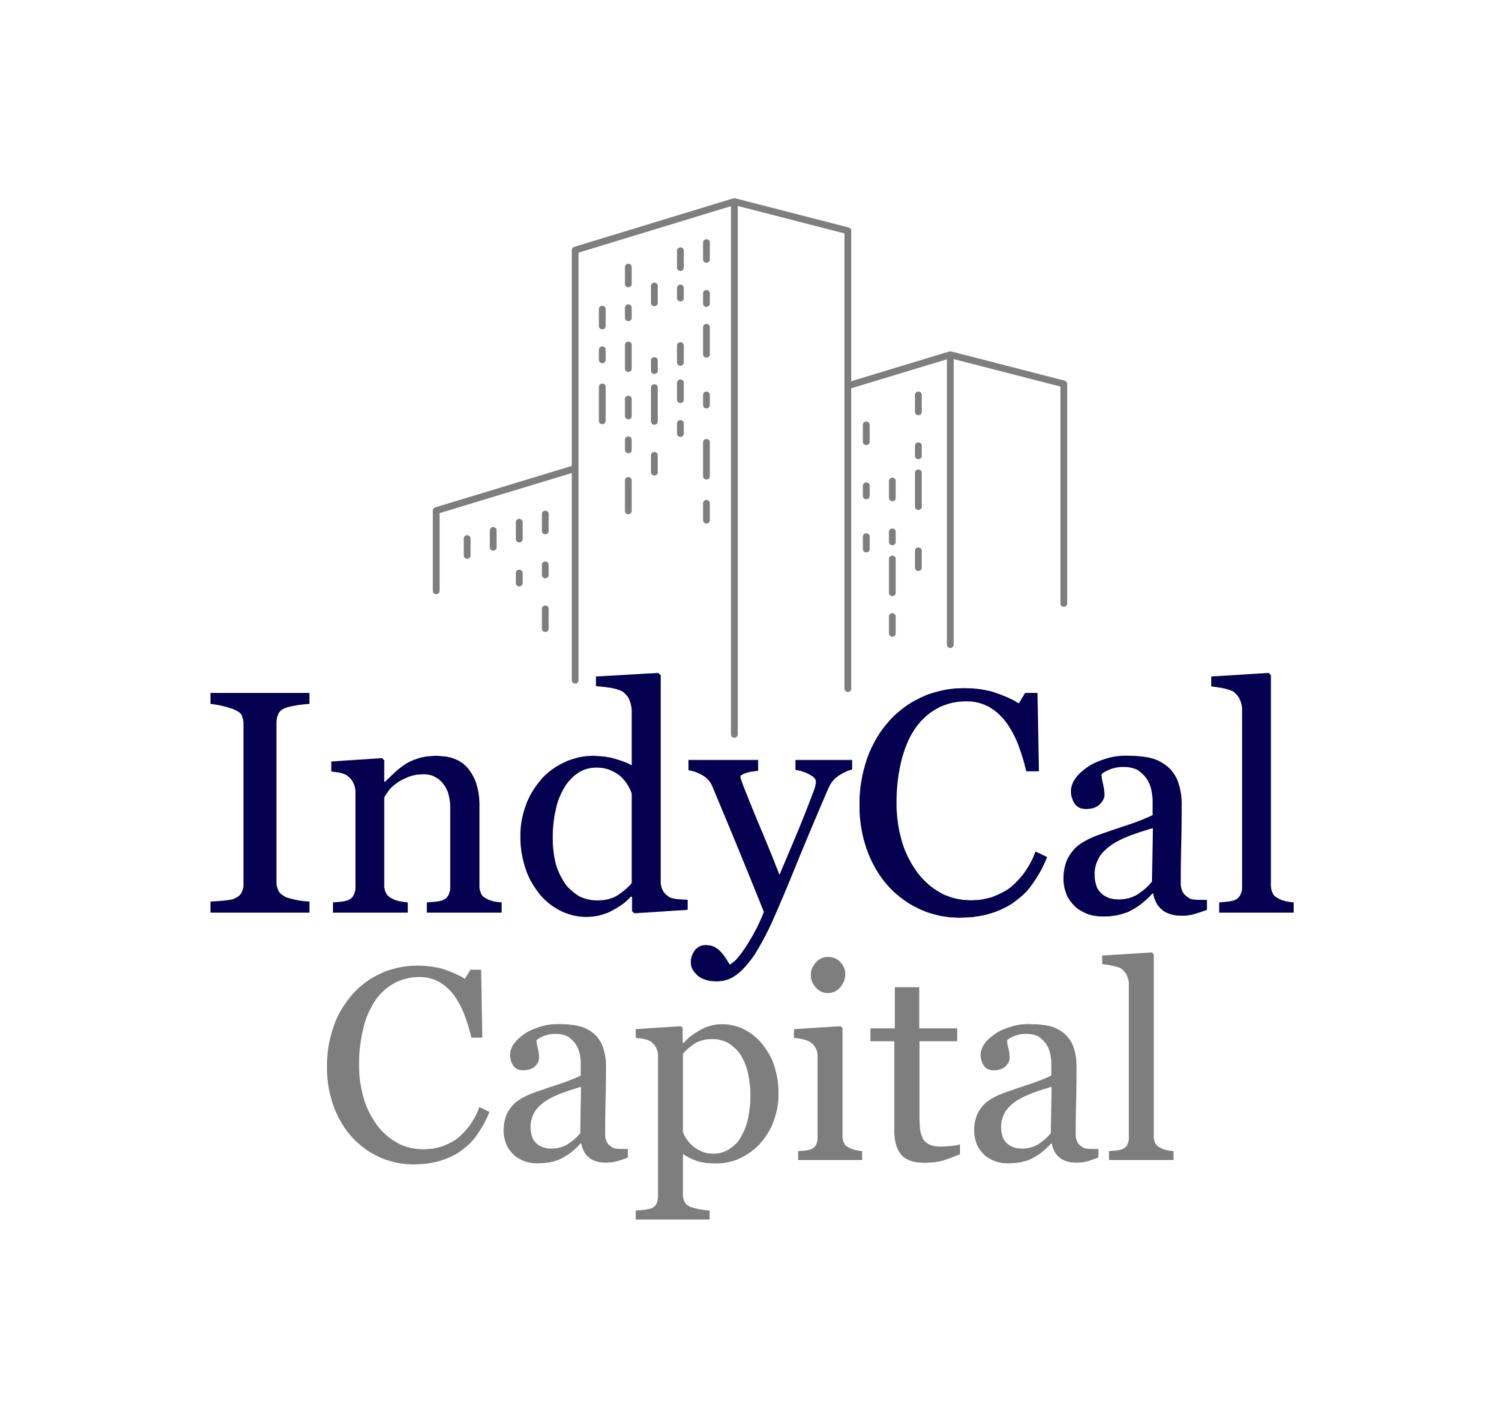 IndyCal Capital